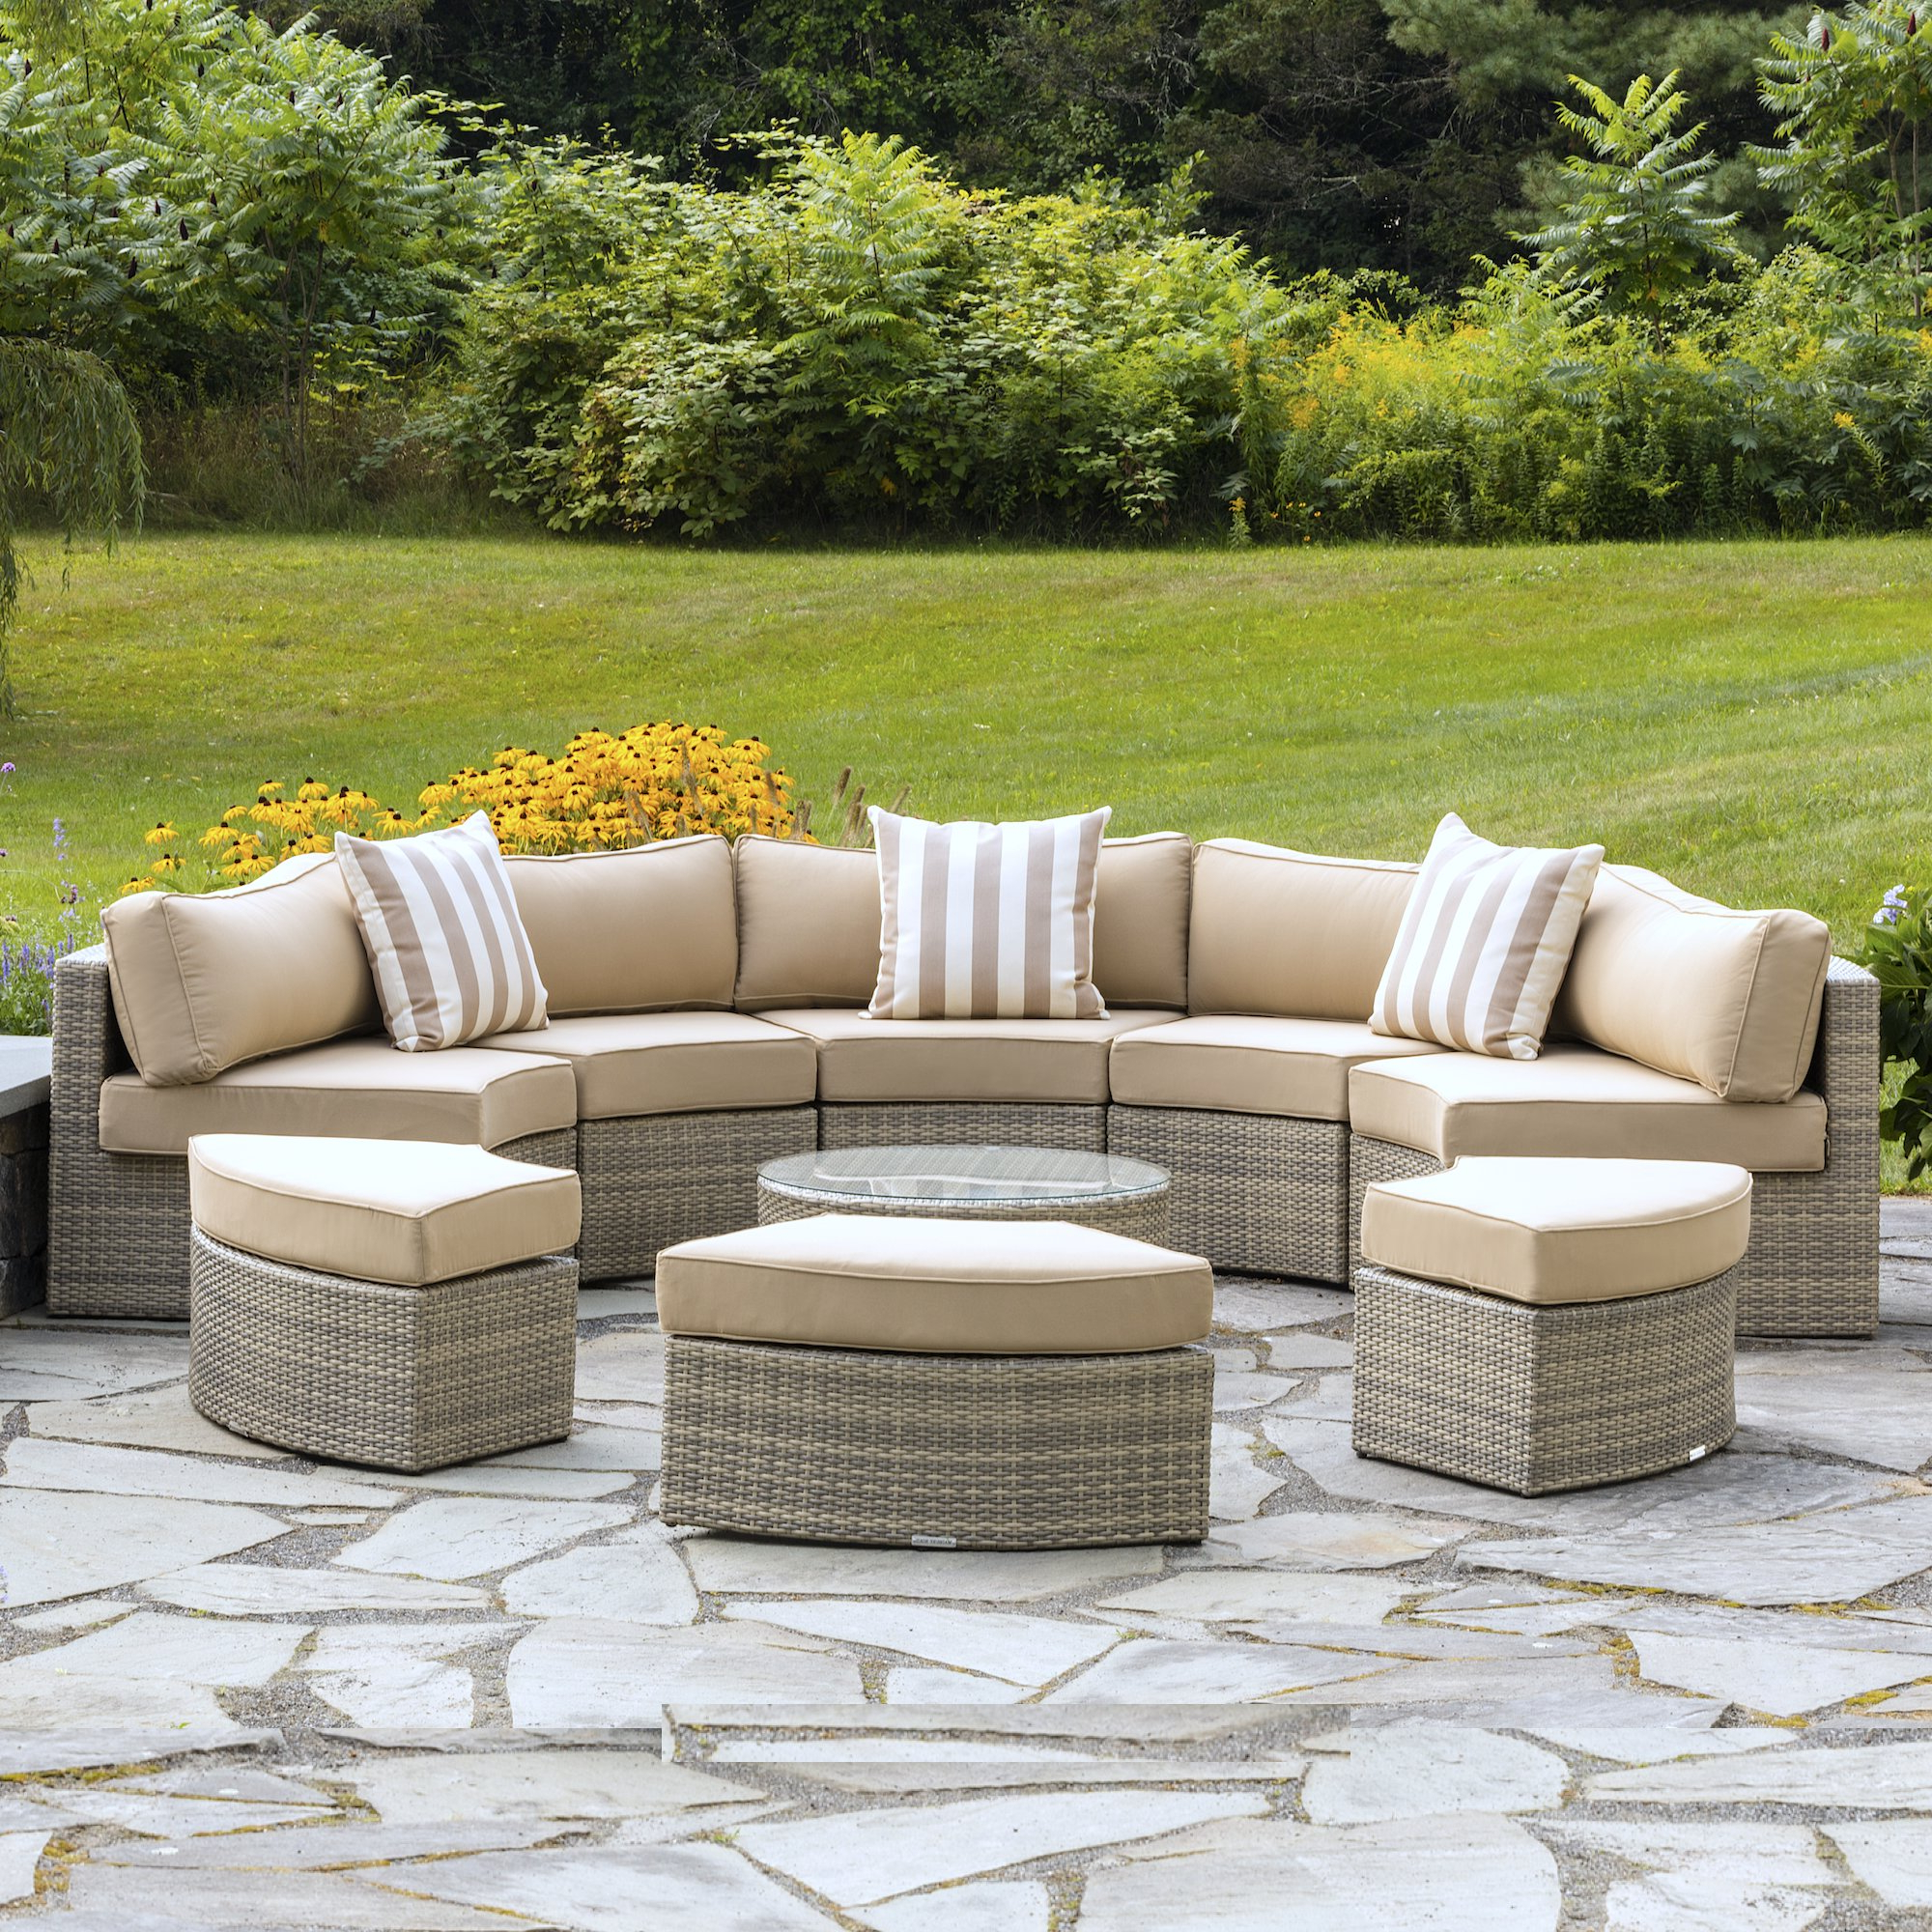 Wrobel Patio Sectionals With Cushion Inside Latest Santorini 9 Piece Sectional Seating Group With Cushions (View 13 of 20)